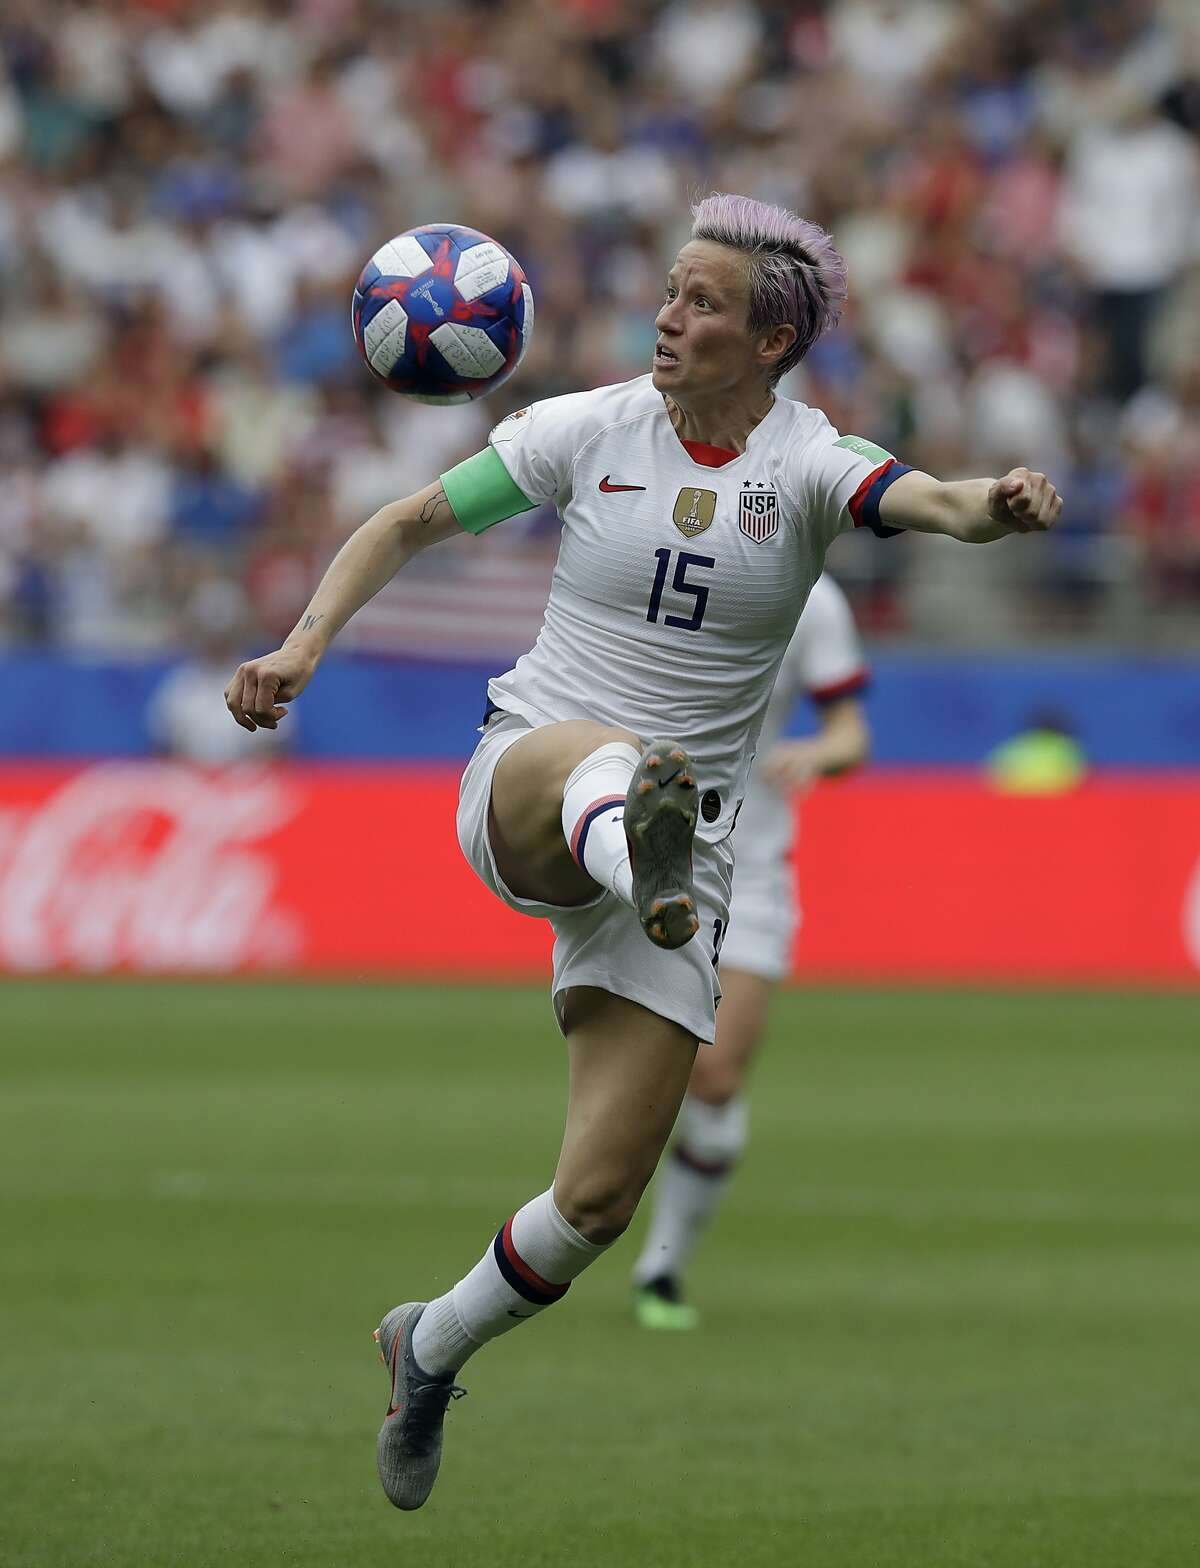 United States'Megan Rapinoe controls the ball during the Women's World Cup round of 16 soccer match between Spain and US at the Stade Auguste-Delaune in Reims, France, Monday, June 24, 2019. (AP Photo/Alessandra Tarantino)